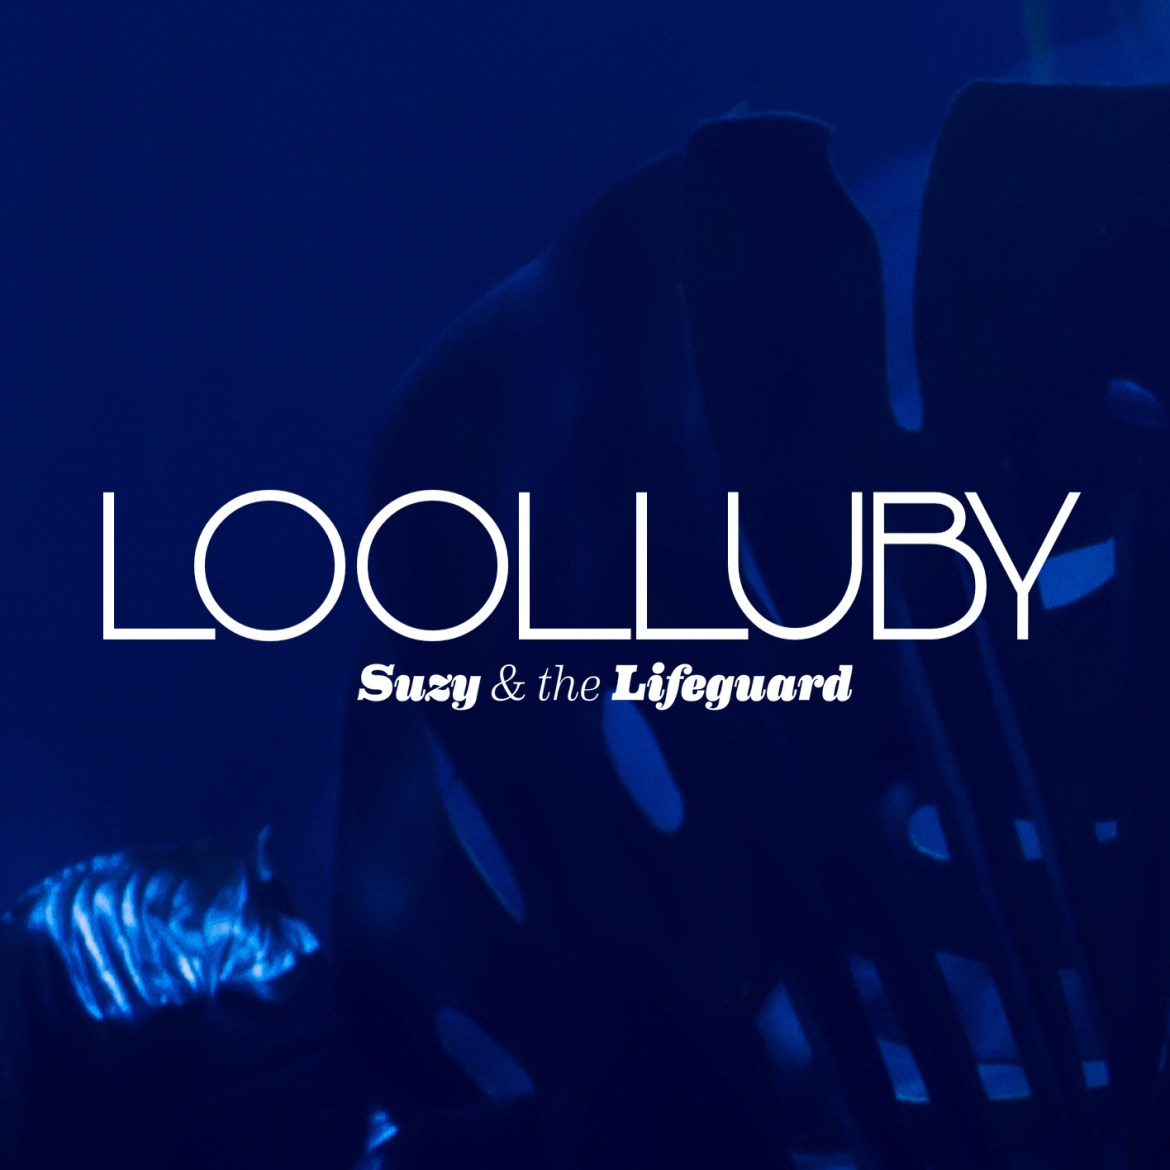 Looolluby Single Artwork